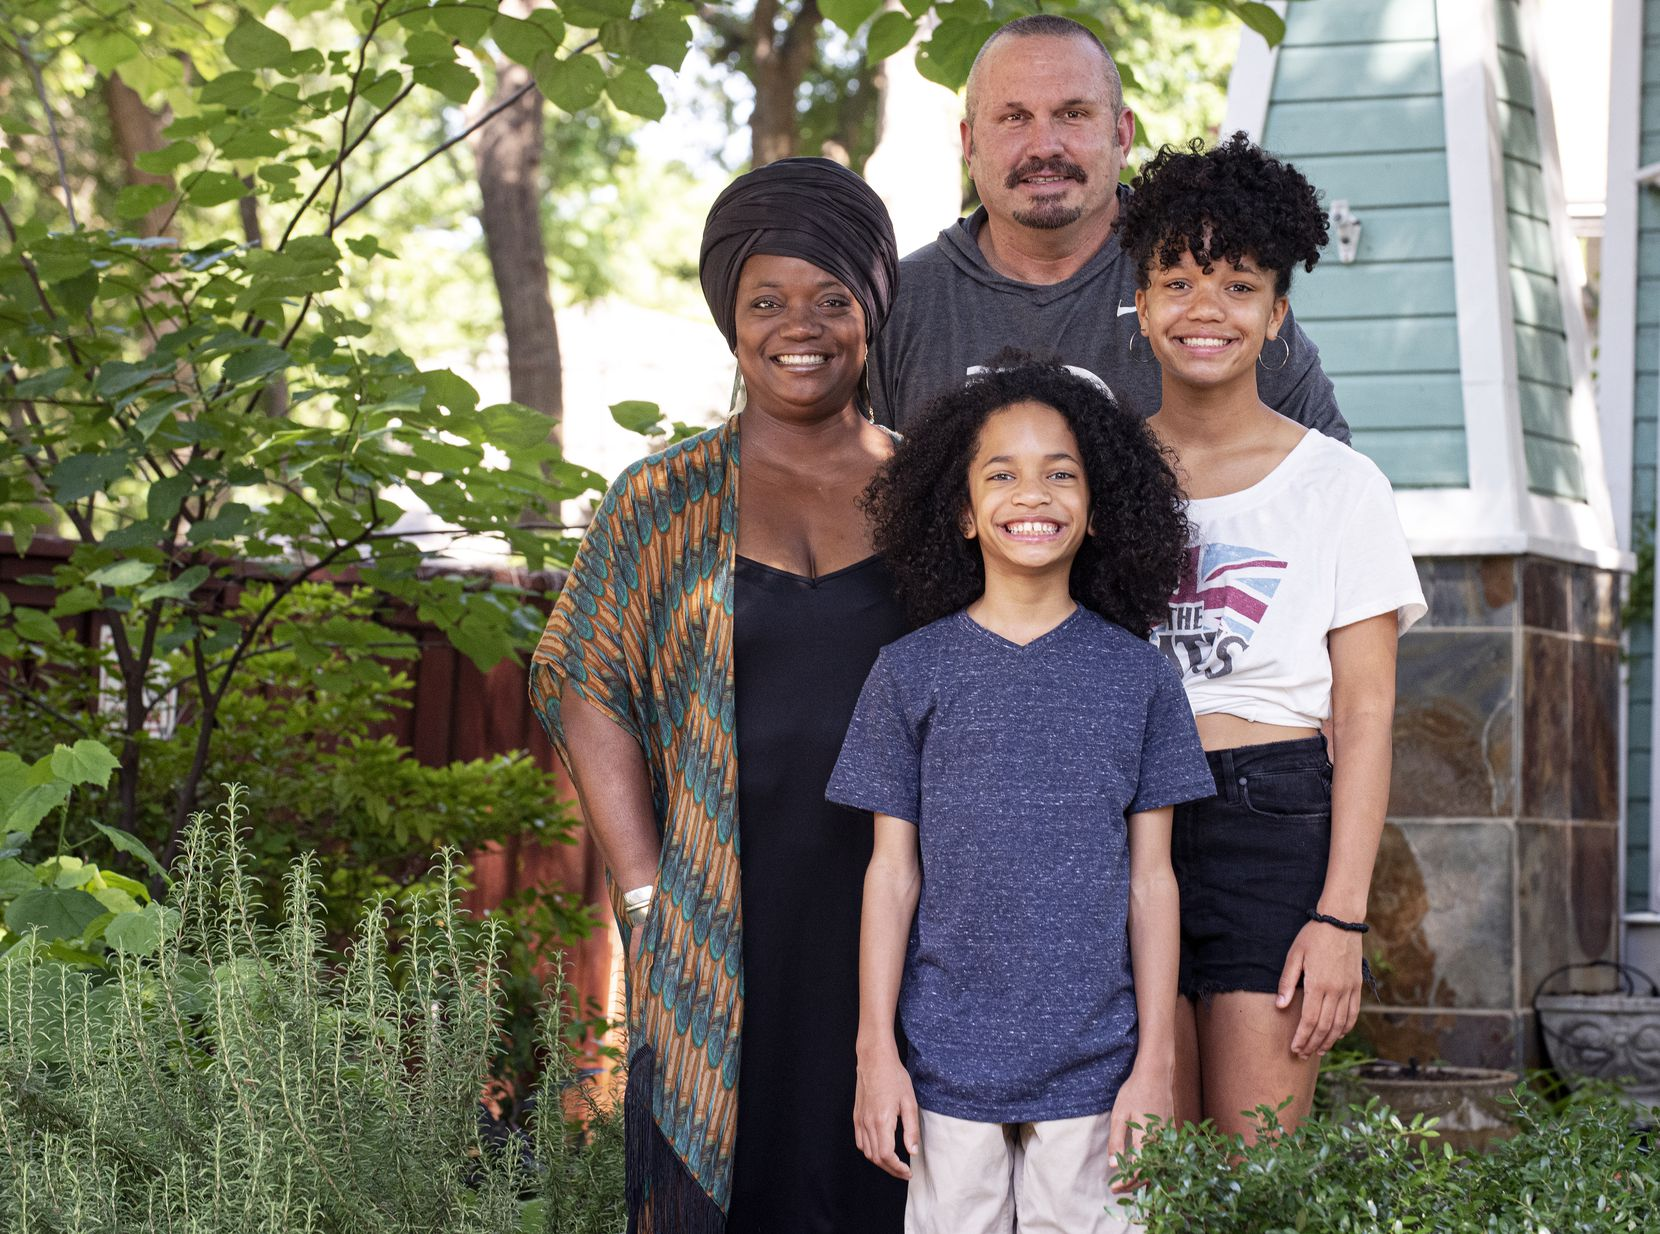 Scott Nady, Director of Recruiting for football at Southern Methodist University, with his family, wife Ronnica Nady, and children Max Nady and Phoenix Nady, outside their home in Dallas, June 09, 2020. Nady has been attending the Dallas protests with his family supporting the Black Lives Matter movement.